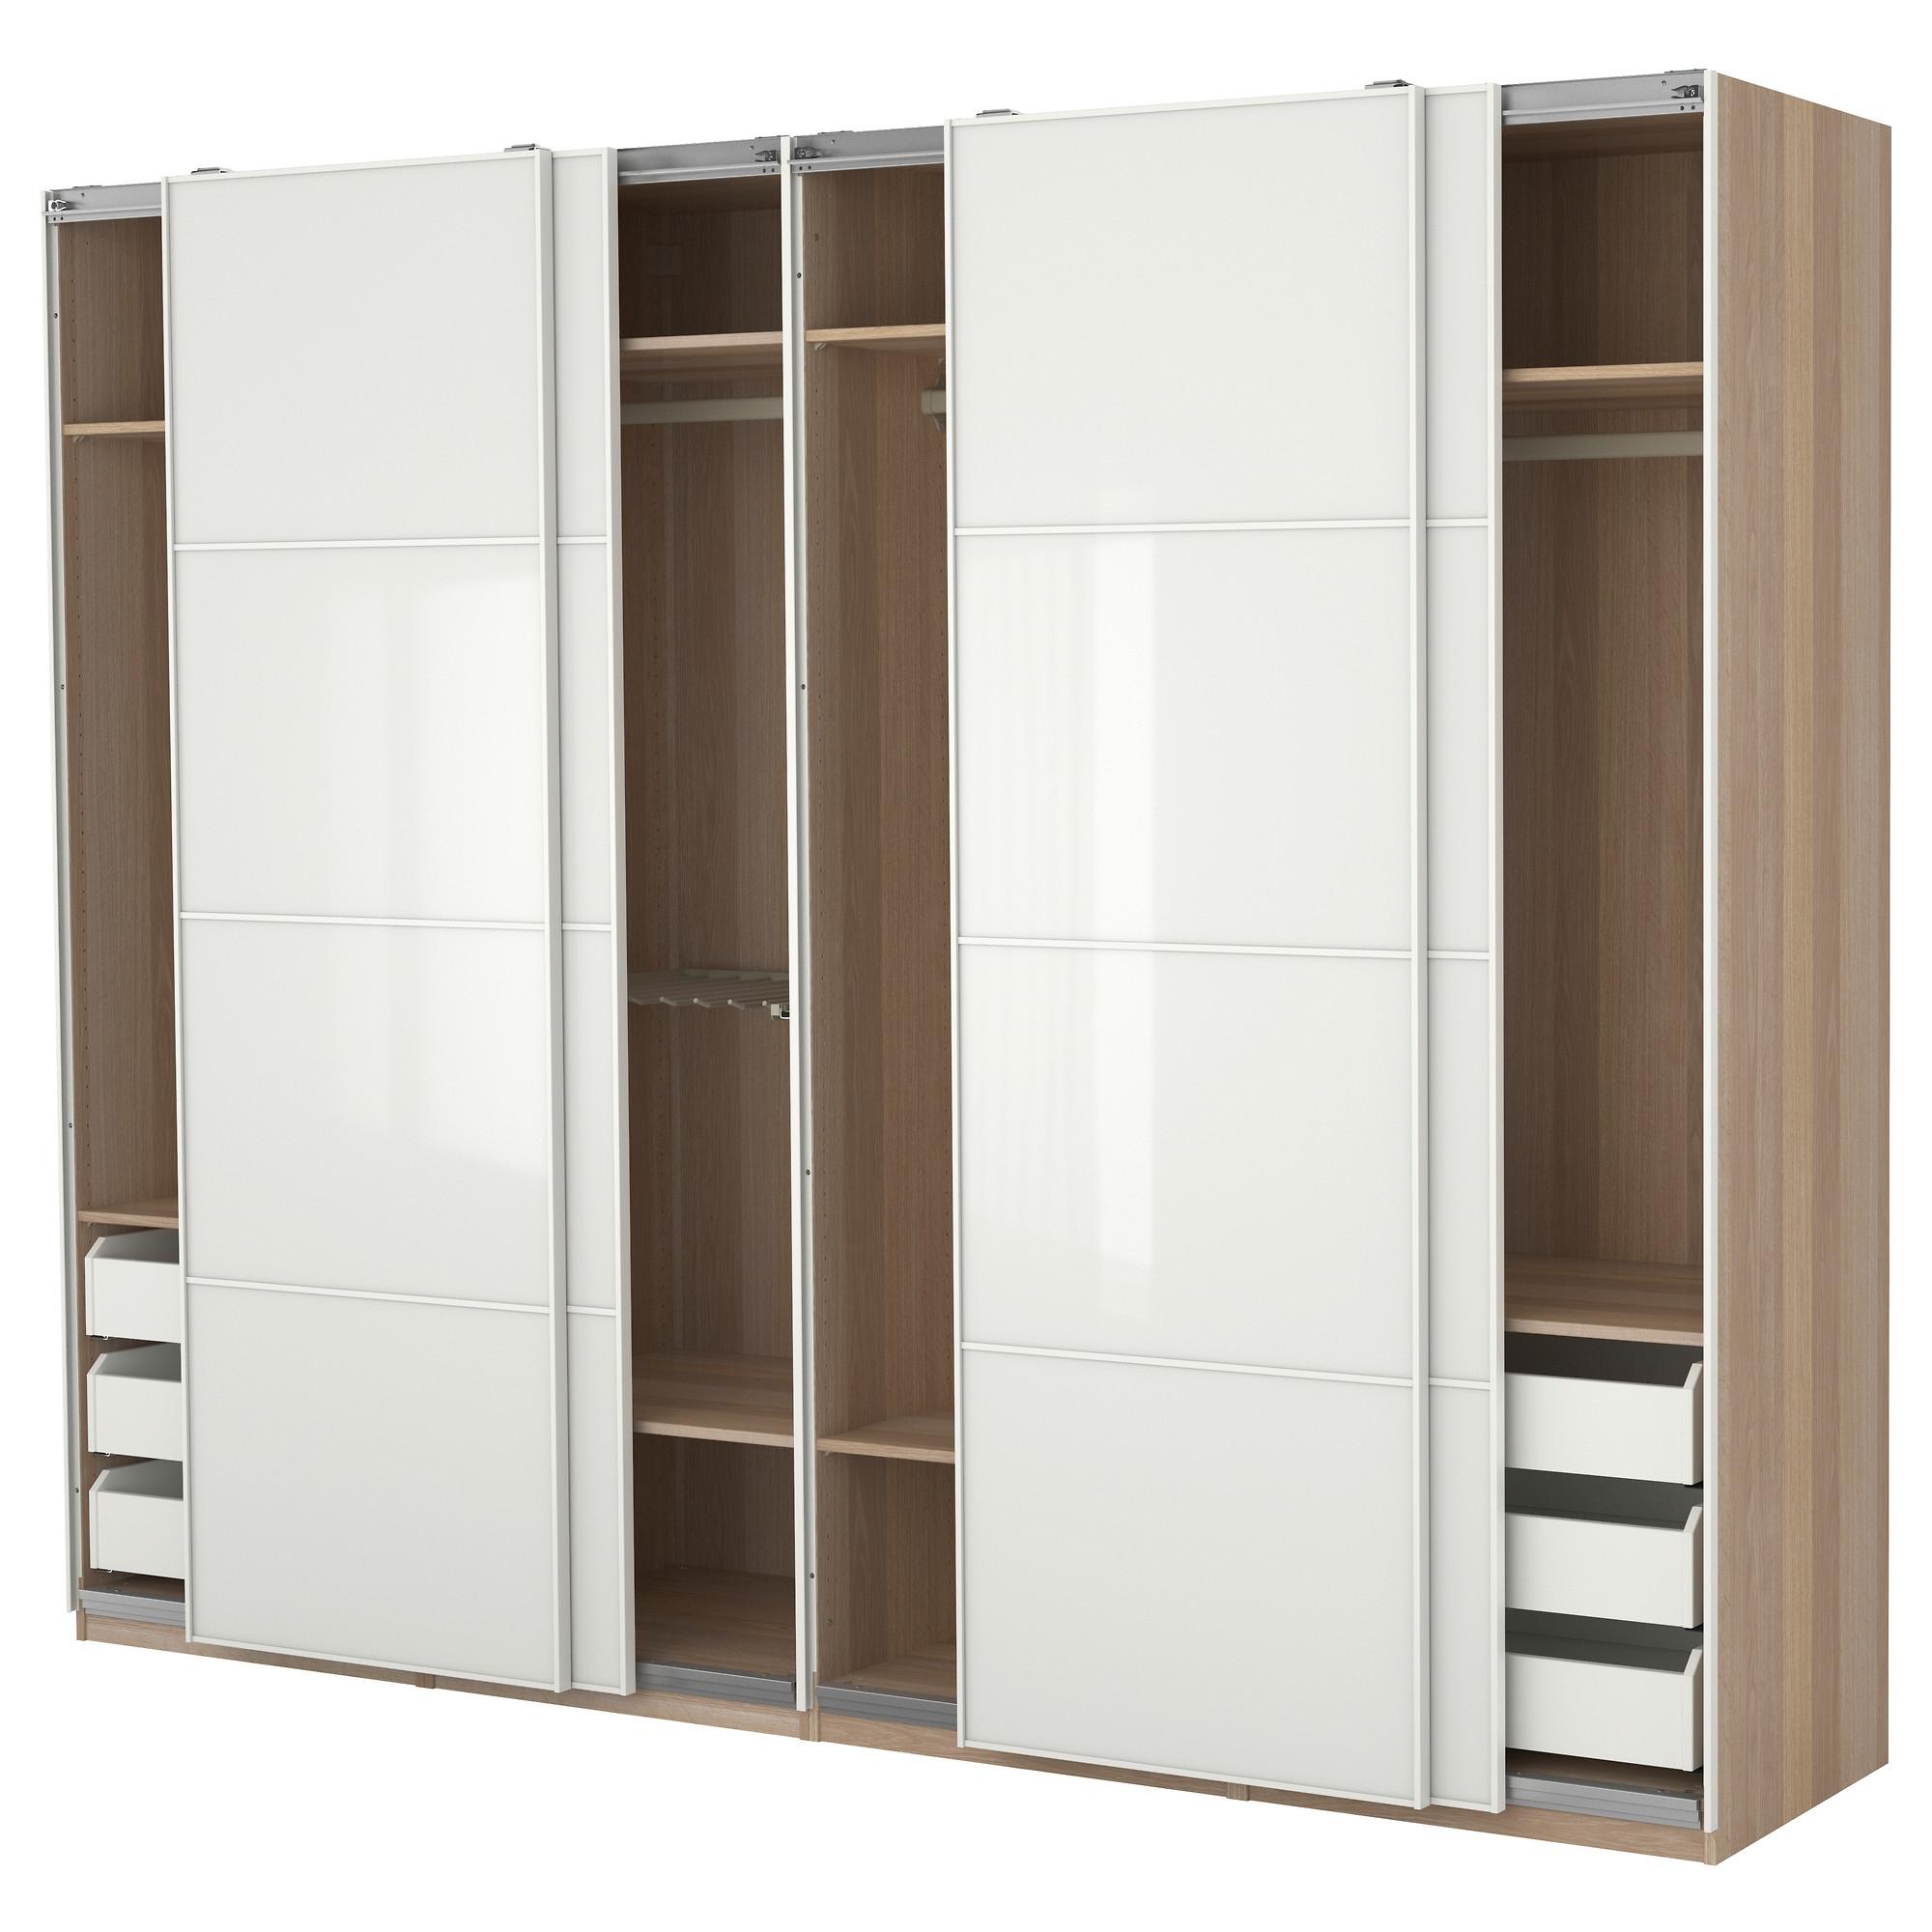 Oversized White Lacquer Glossy Solid Wood Tall Wardrobe Closet For Solid Wood Wardrobe Closets (Image 16 of 25)